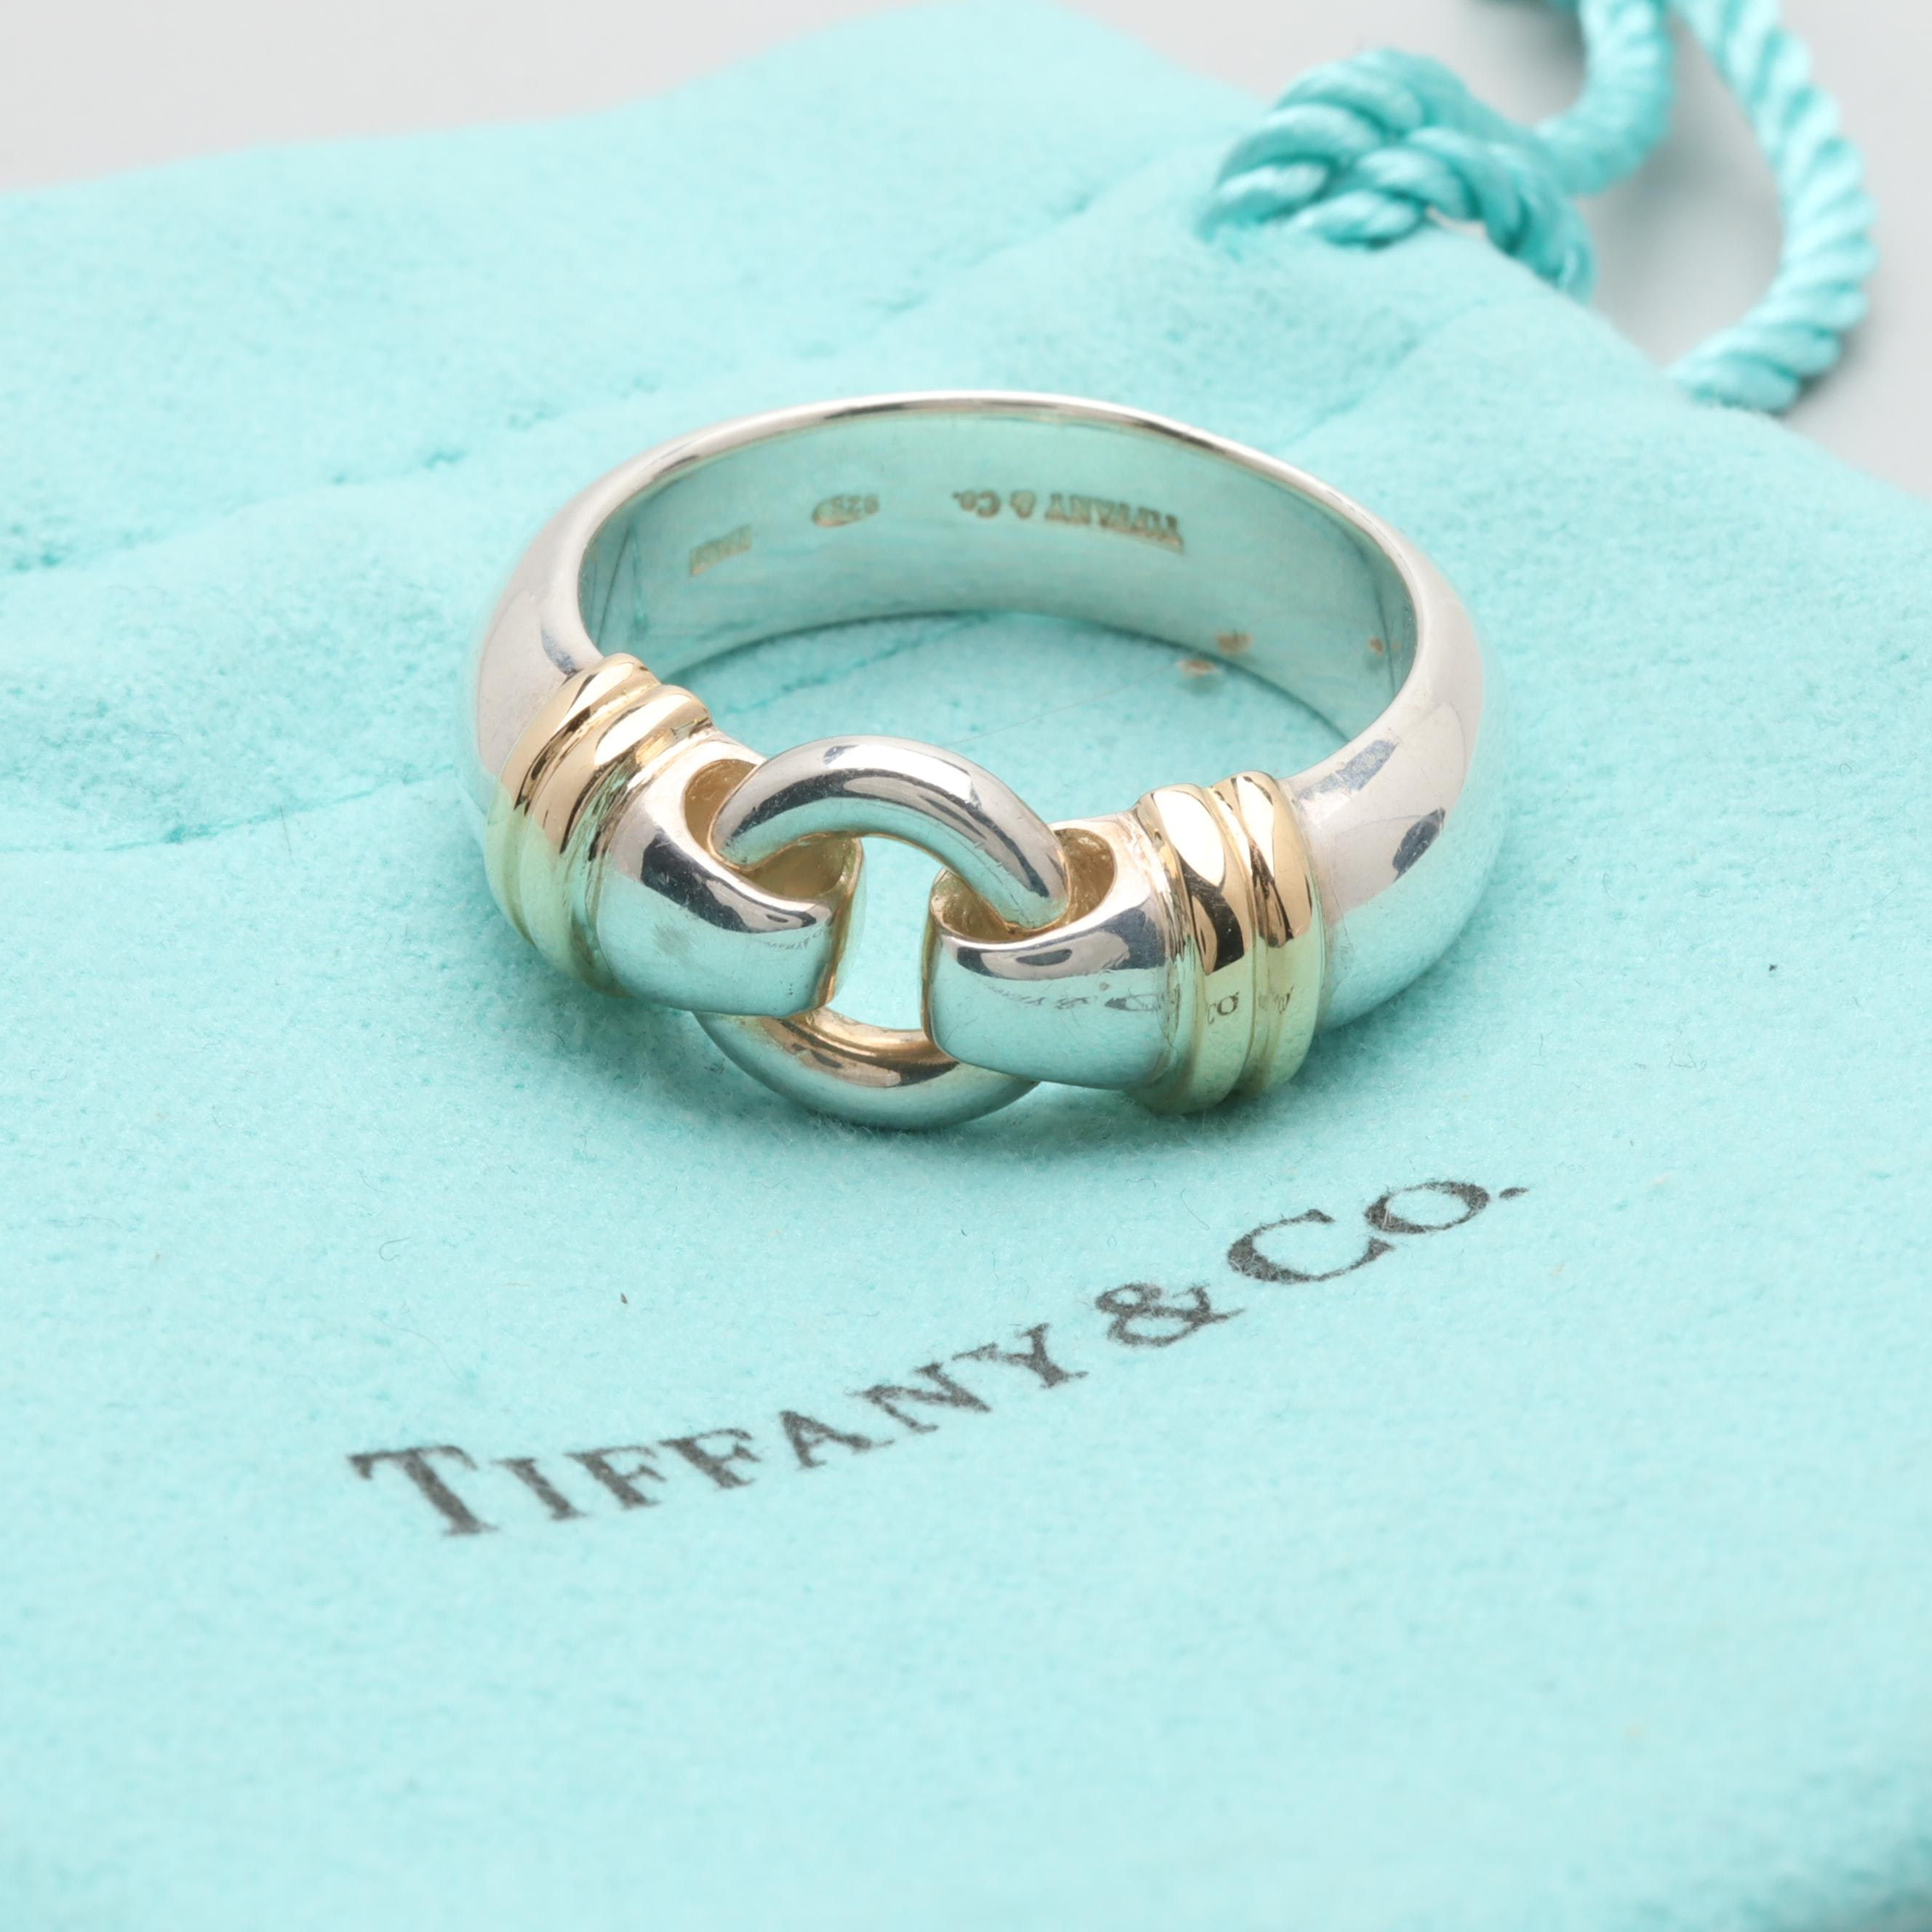 Tiffany & Co. Sterling Silver Ring with 18K Yellow Gold Accents